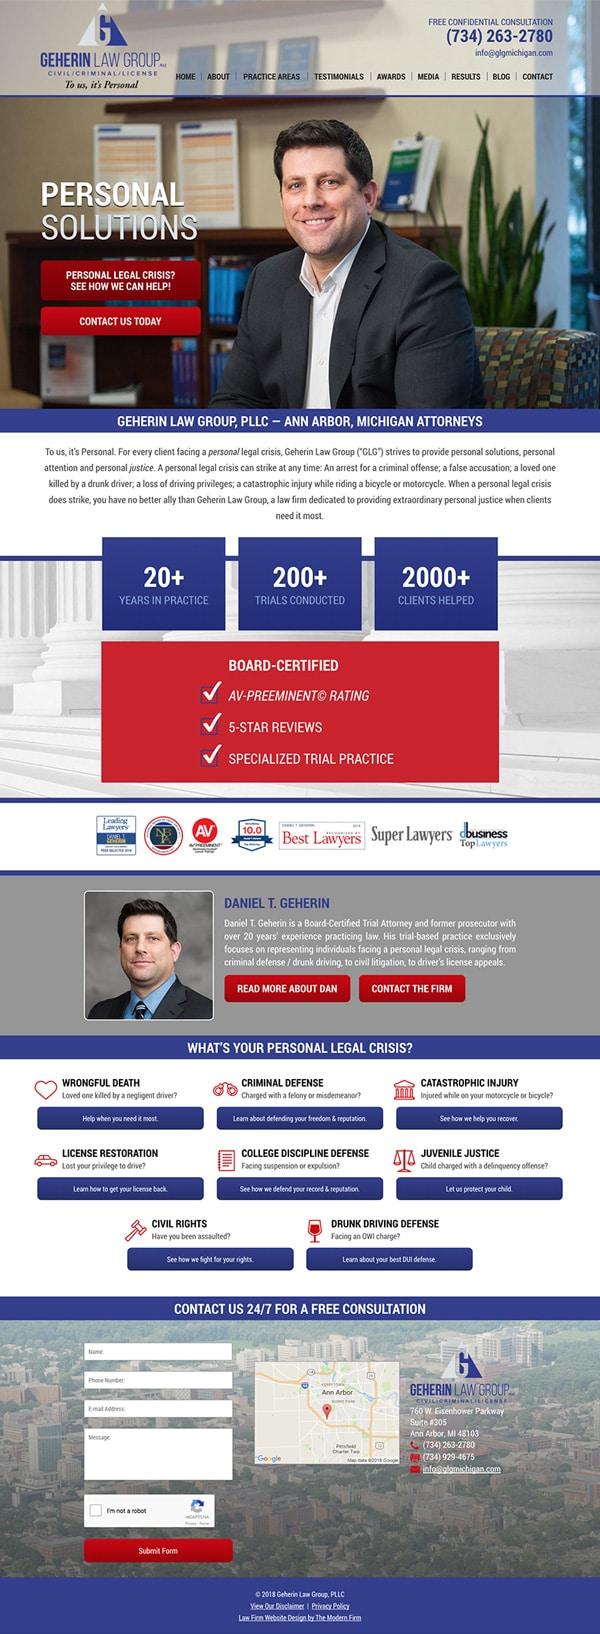 Law Firm Website Design for Geherin Law Group, PLLC